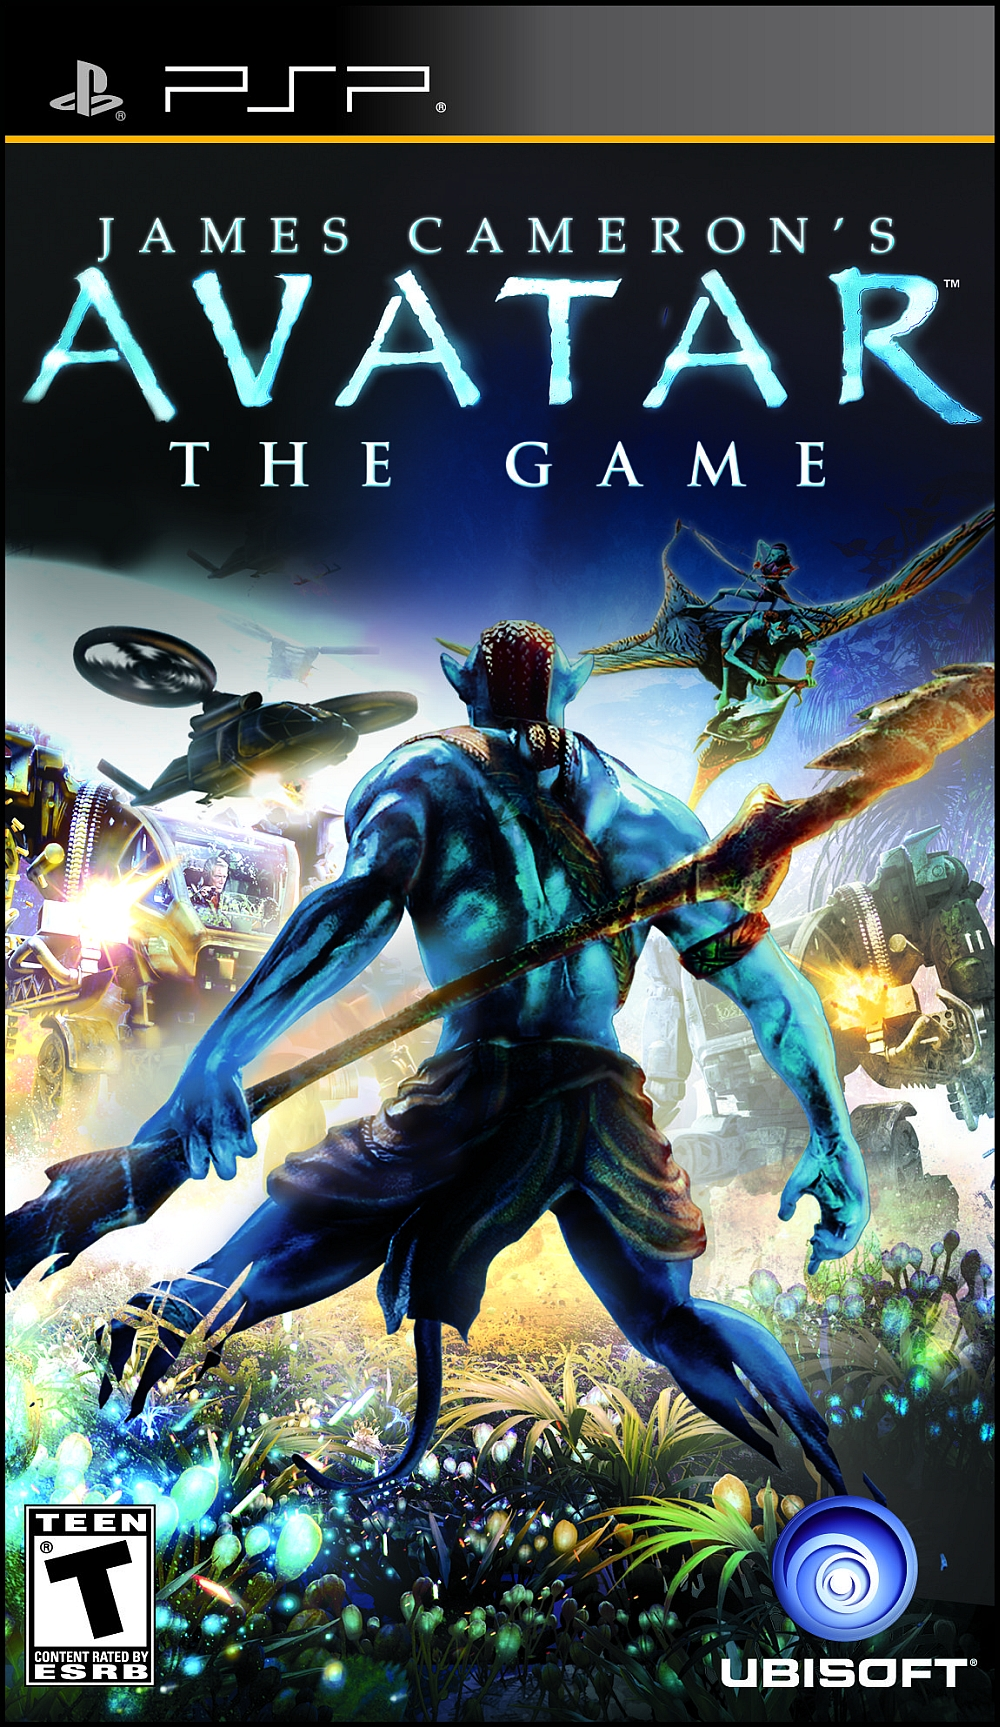 Avator the movie game